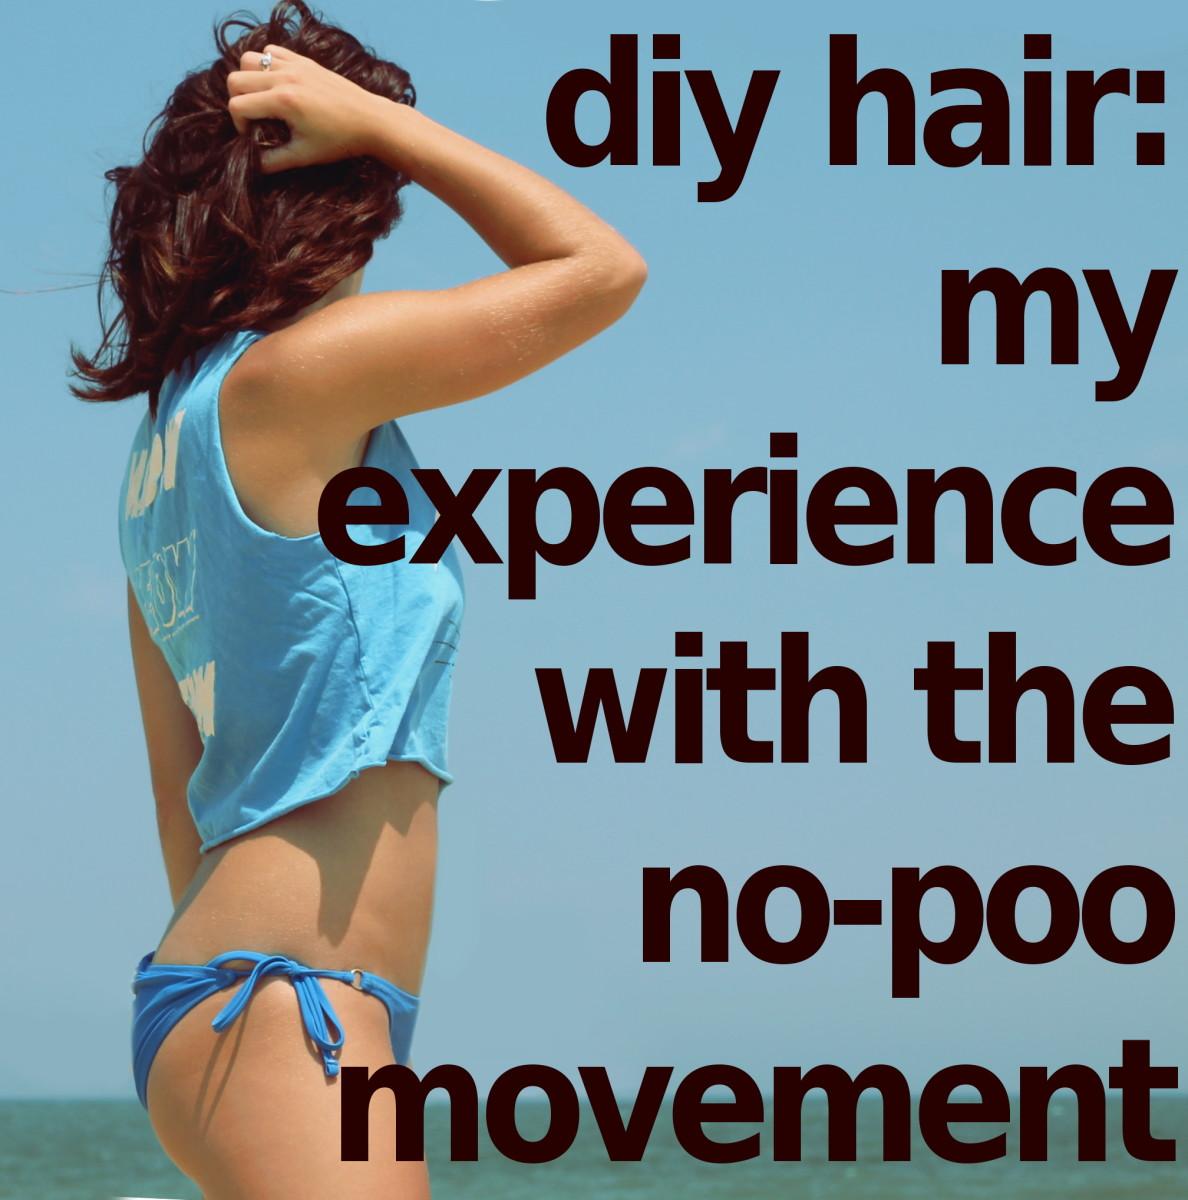 diy-hair-my-experience-with-the-no-poo-movement